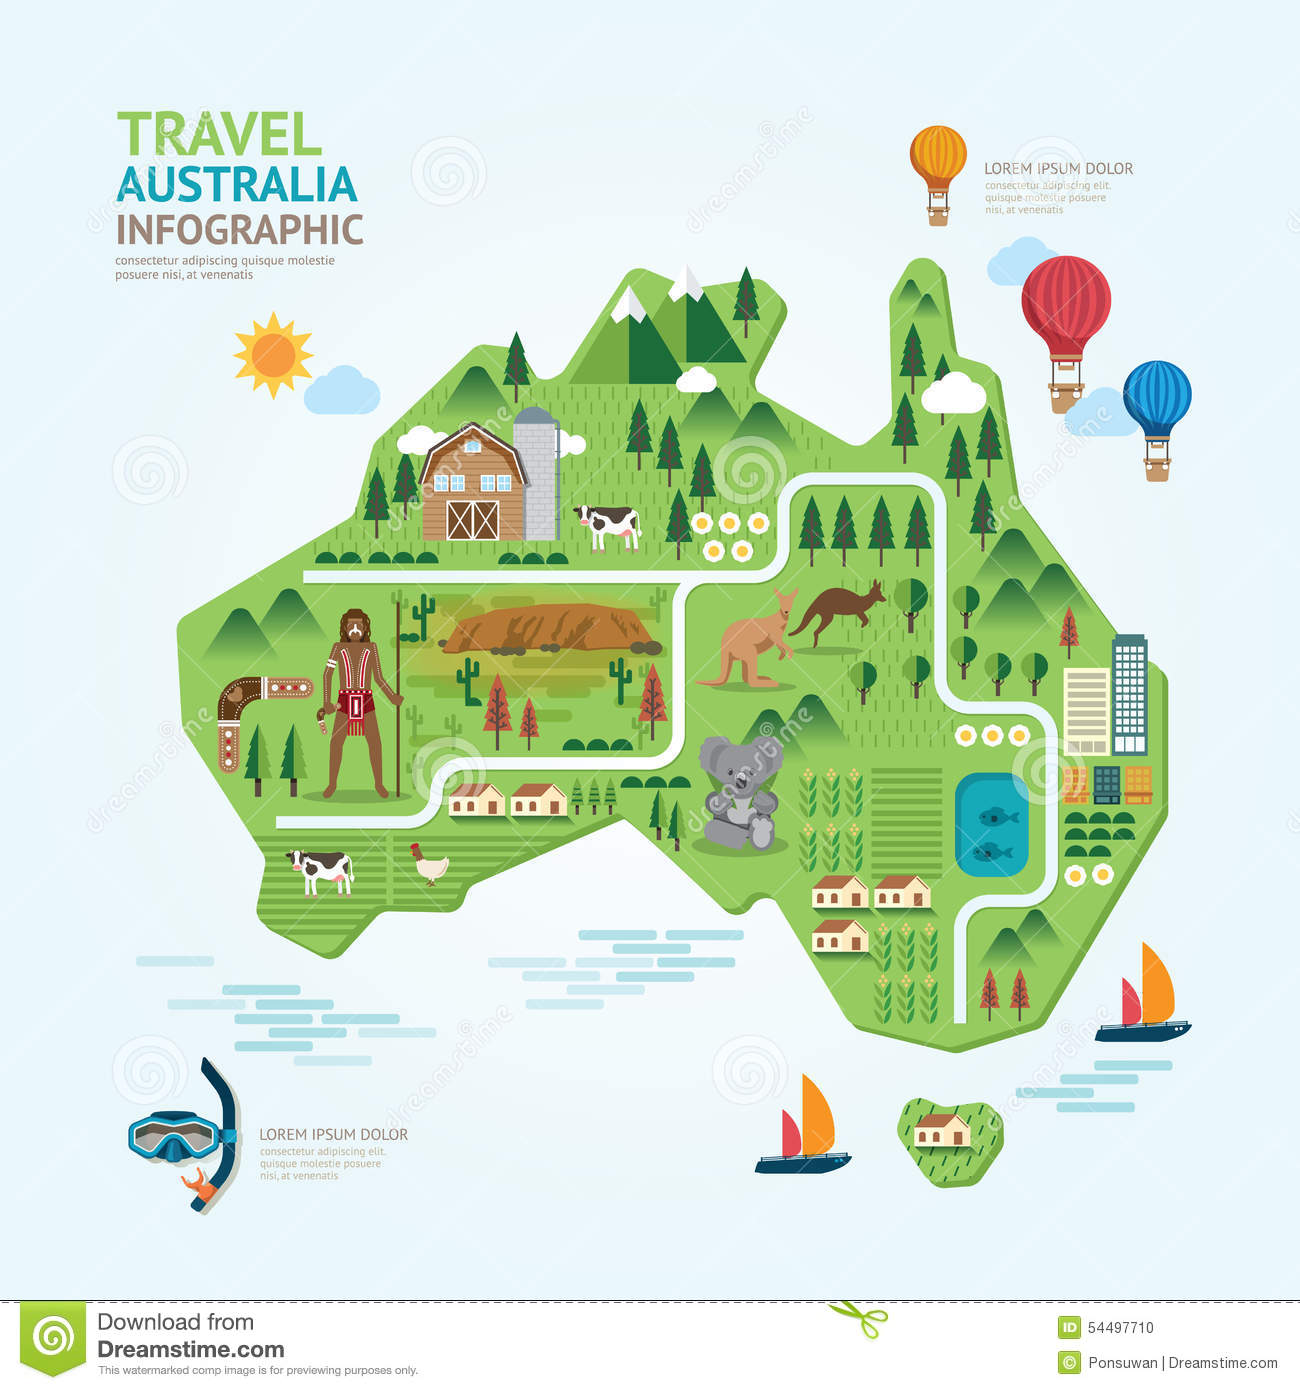 Maps Update Travel Maps Australia Australia Tourist Map - Australian road maps free